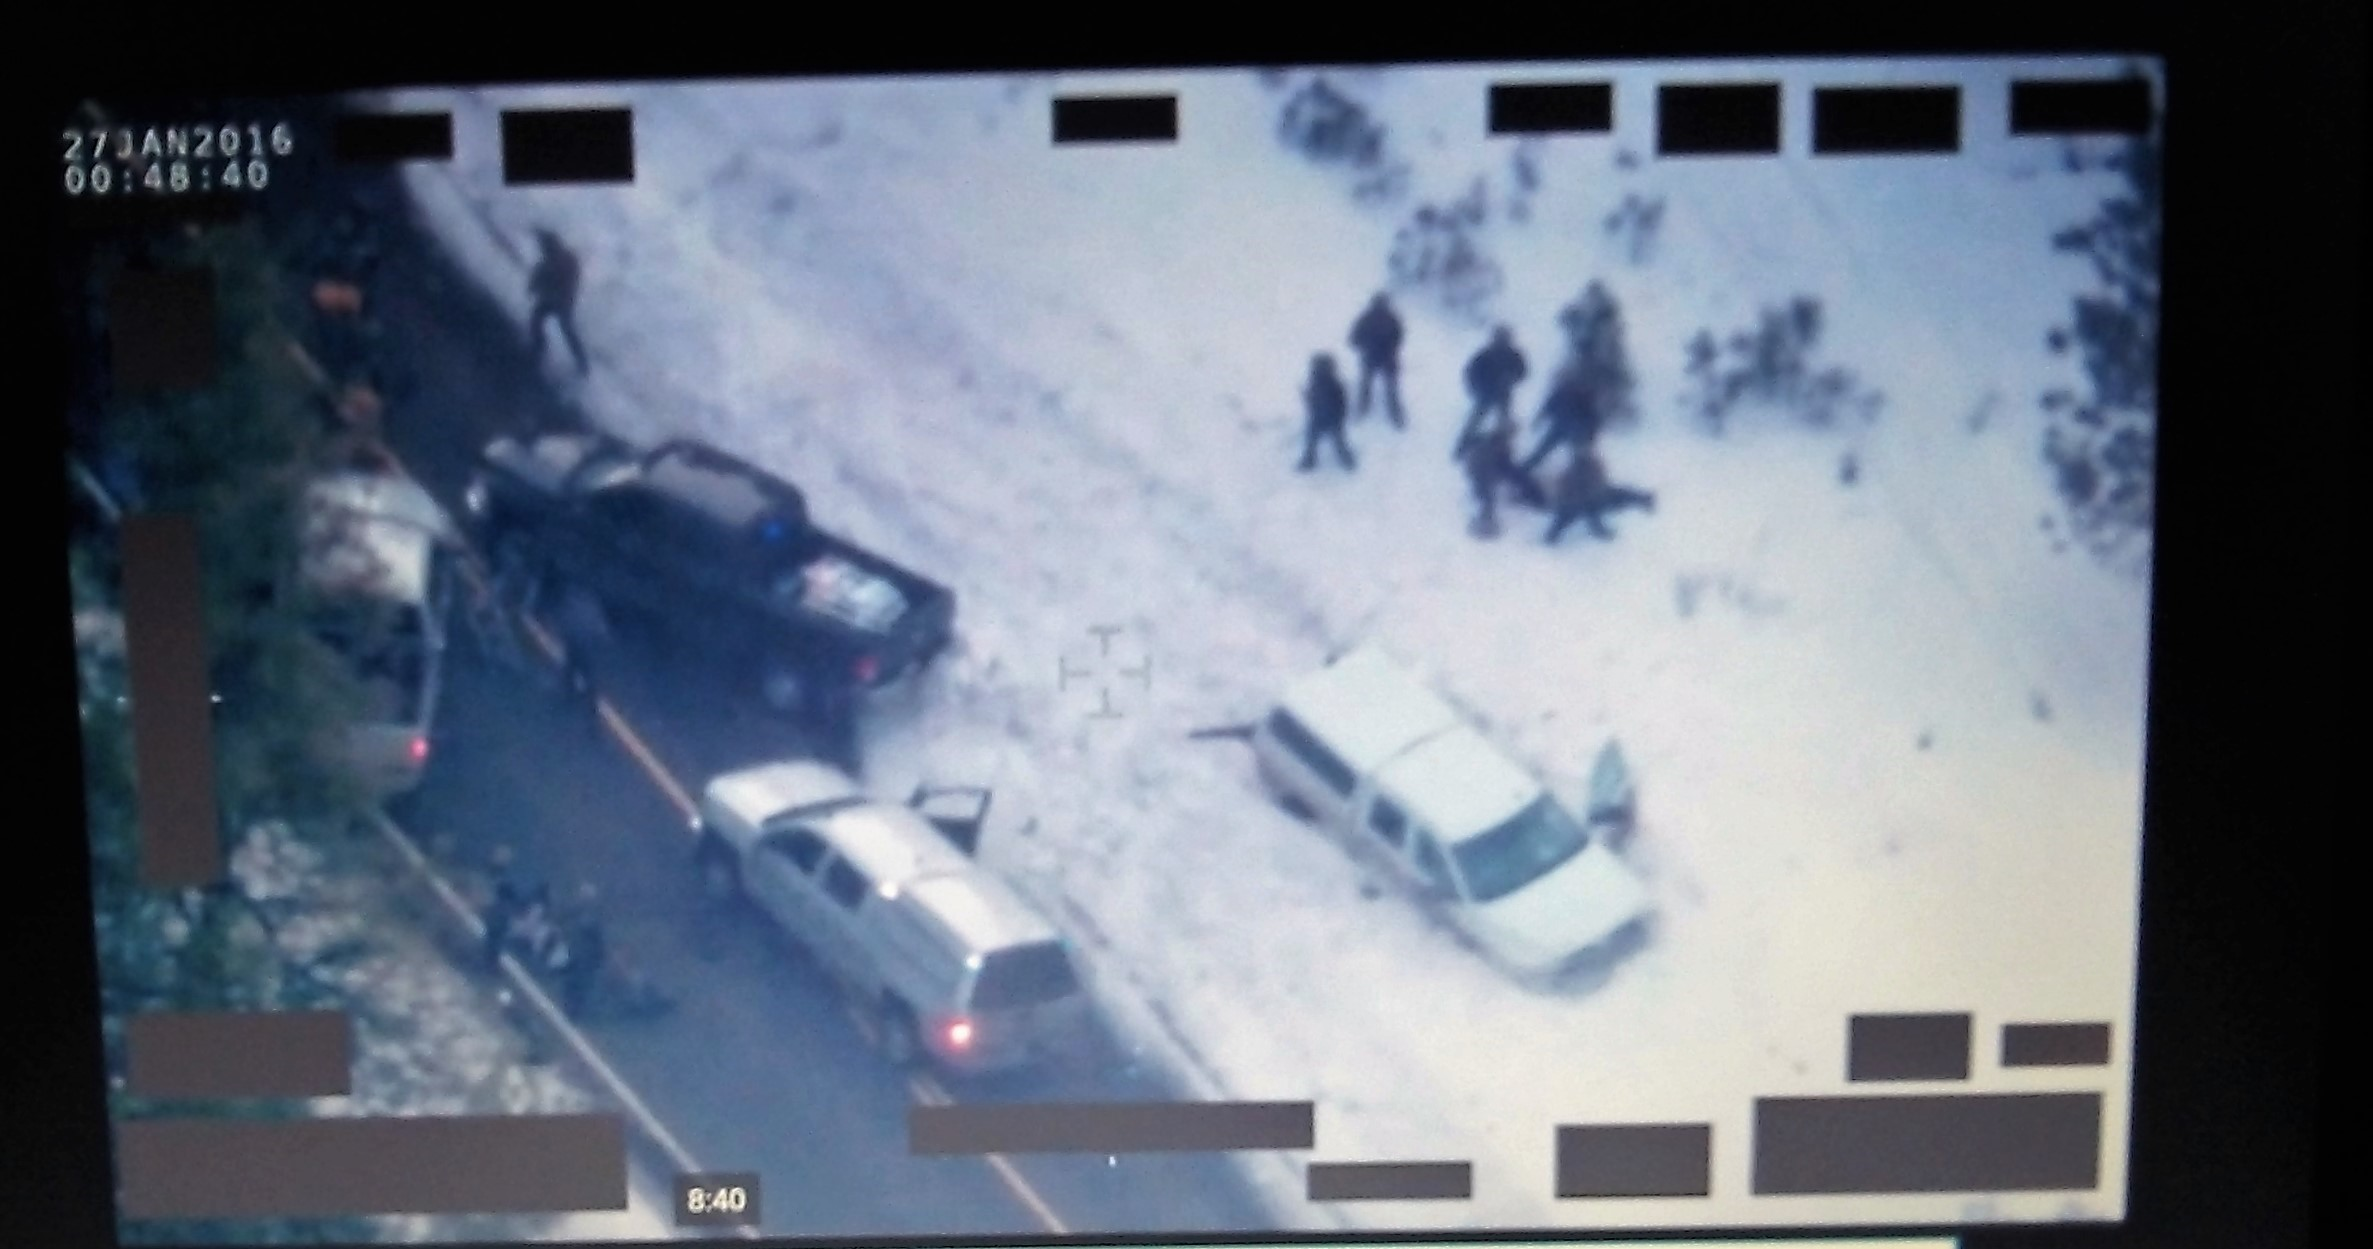 FBI video: Law officers gather around the body of the dead rancher after others in the truck have come out.